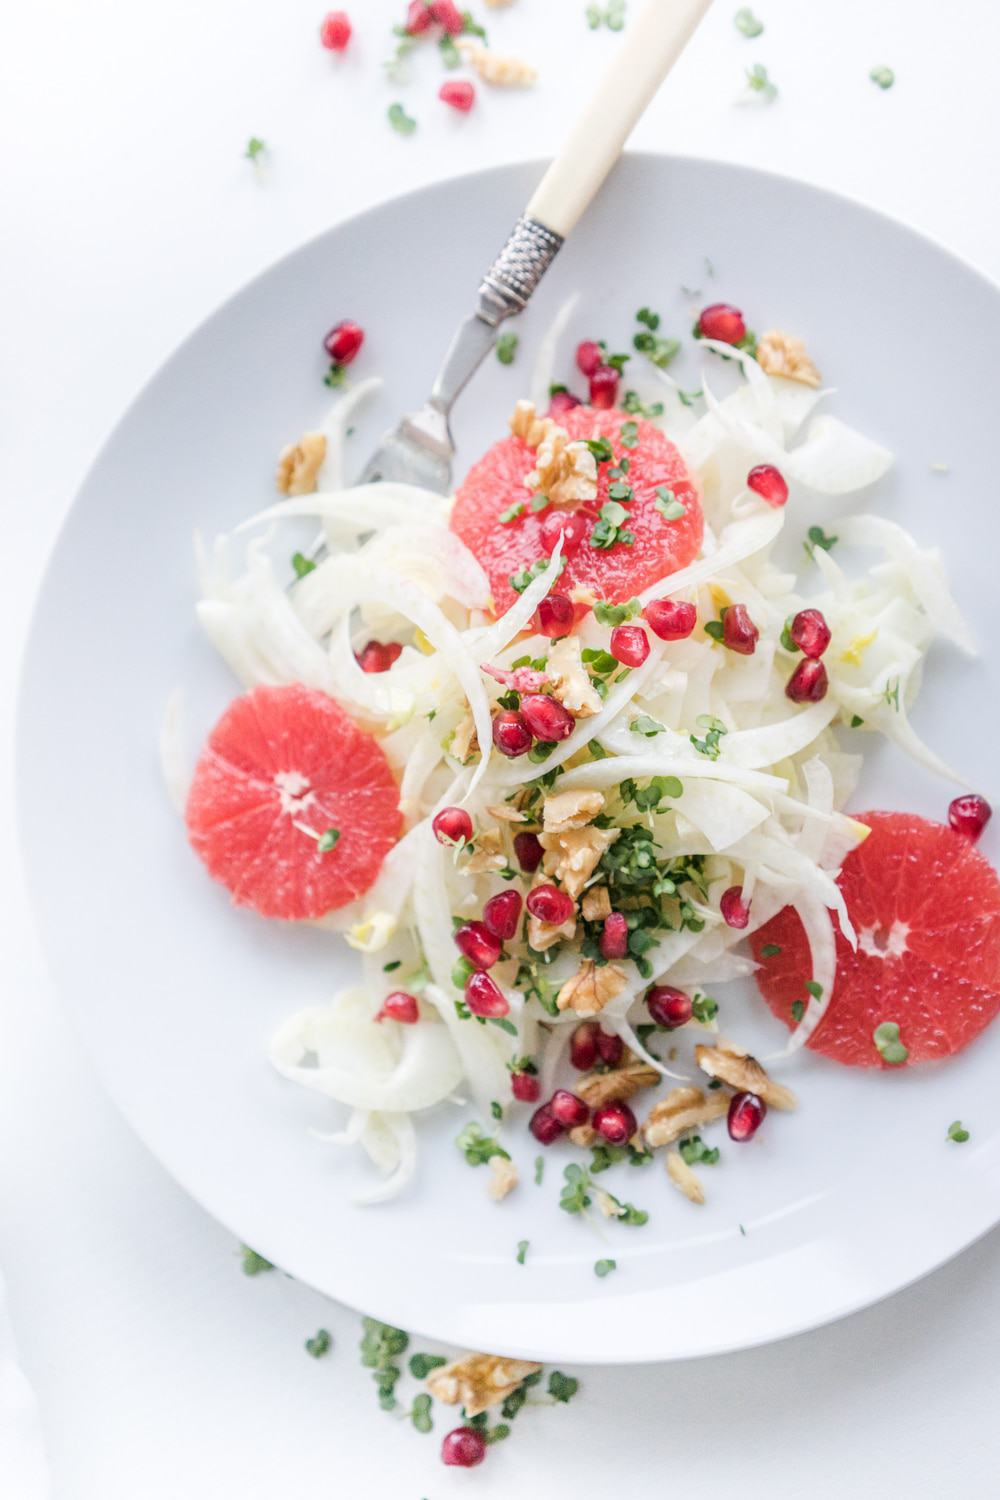 40 delicious & healthy vegan salad recipes picture of fennel salad for recipe roundup